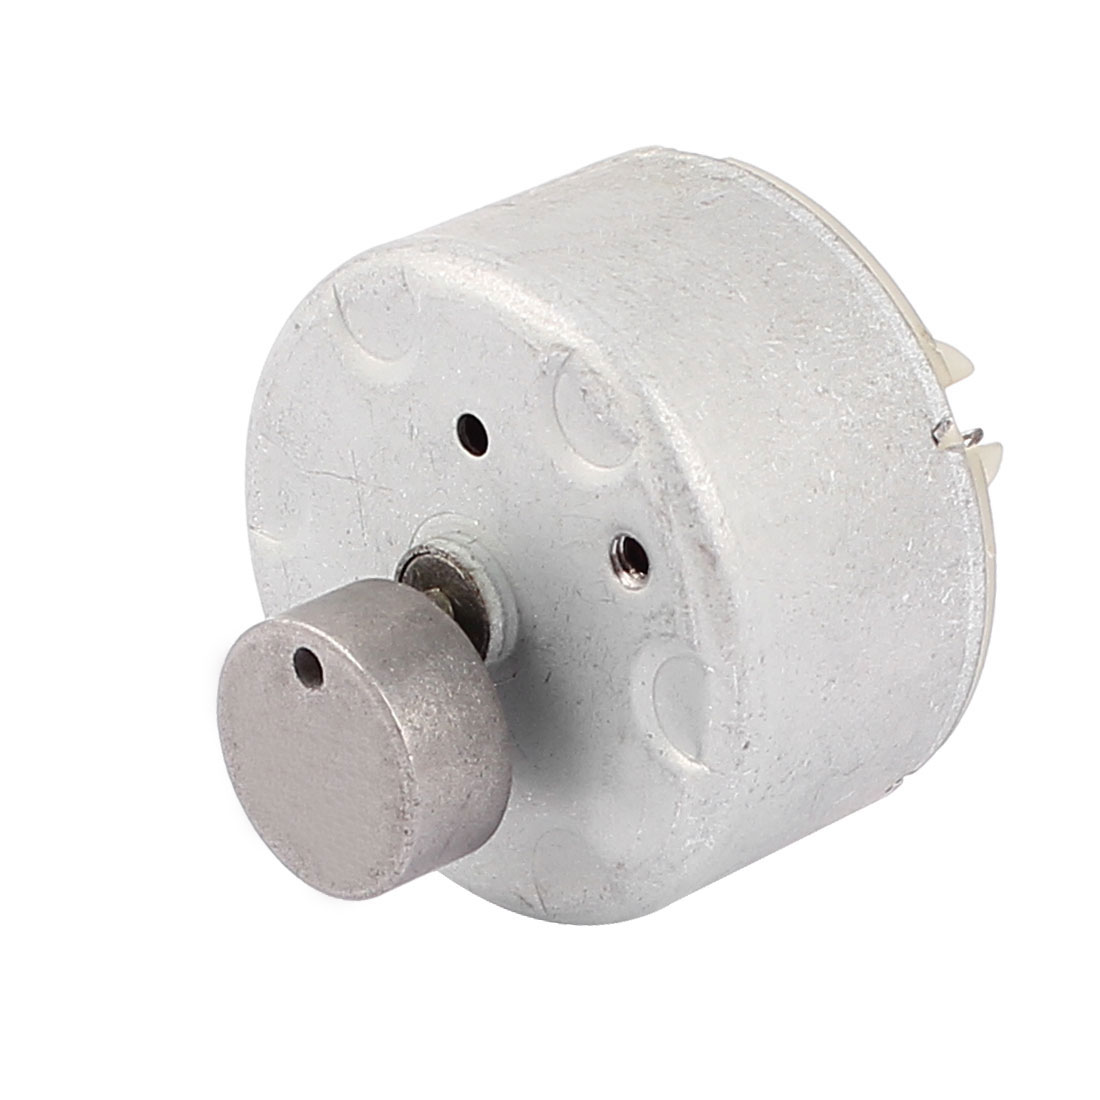 DC 3-12V 7200RPM Electronic Vibration Motor Repairing Part